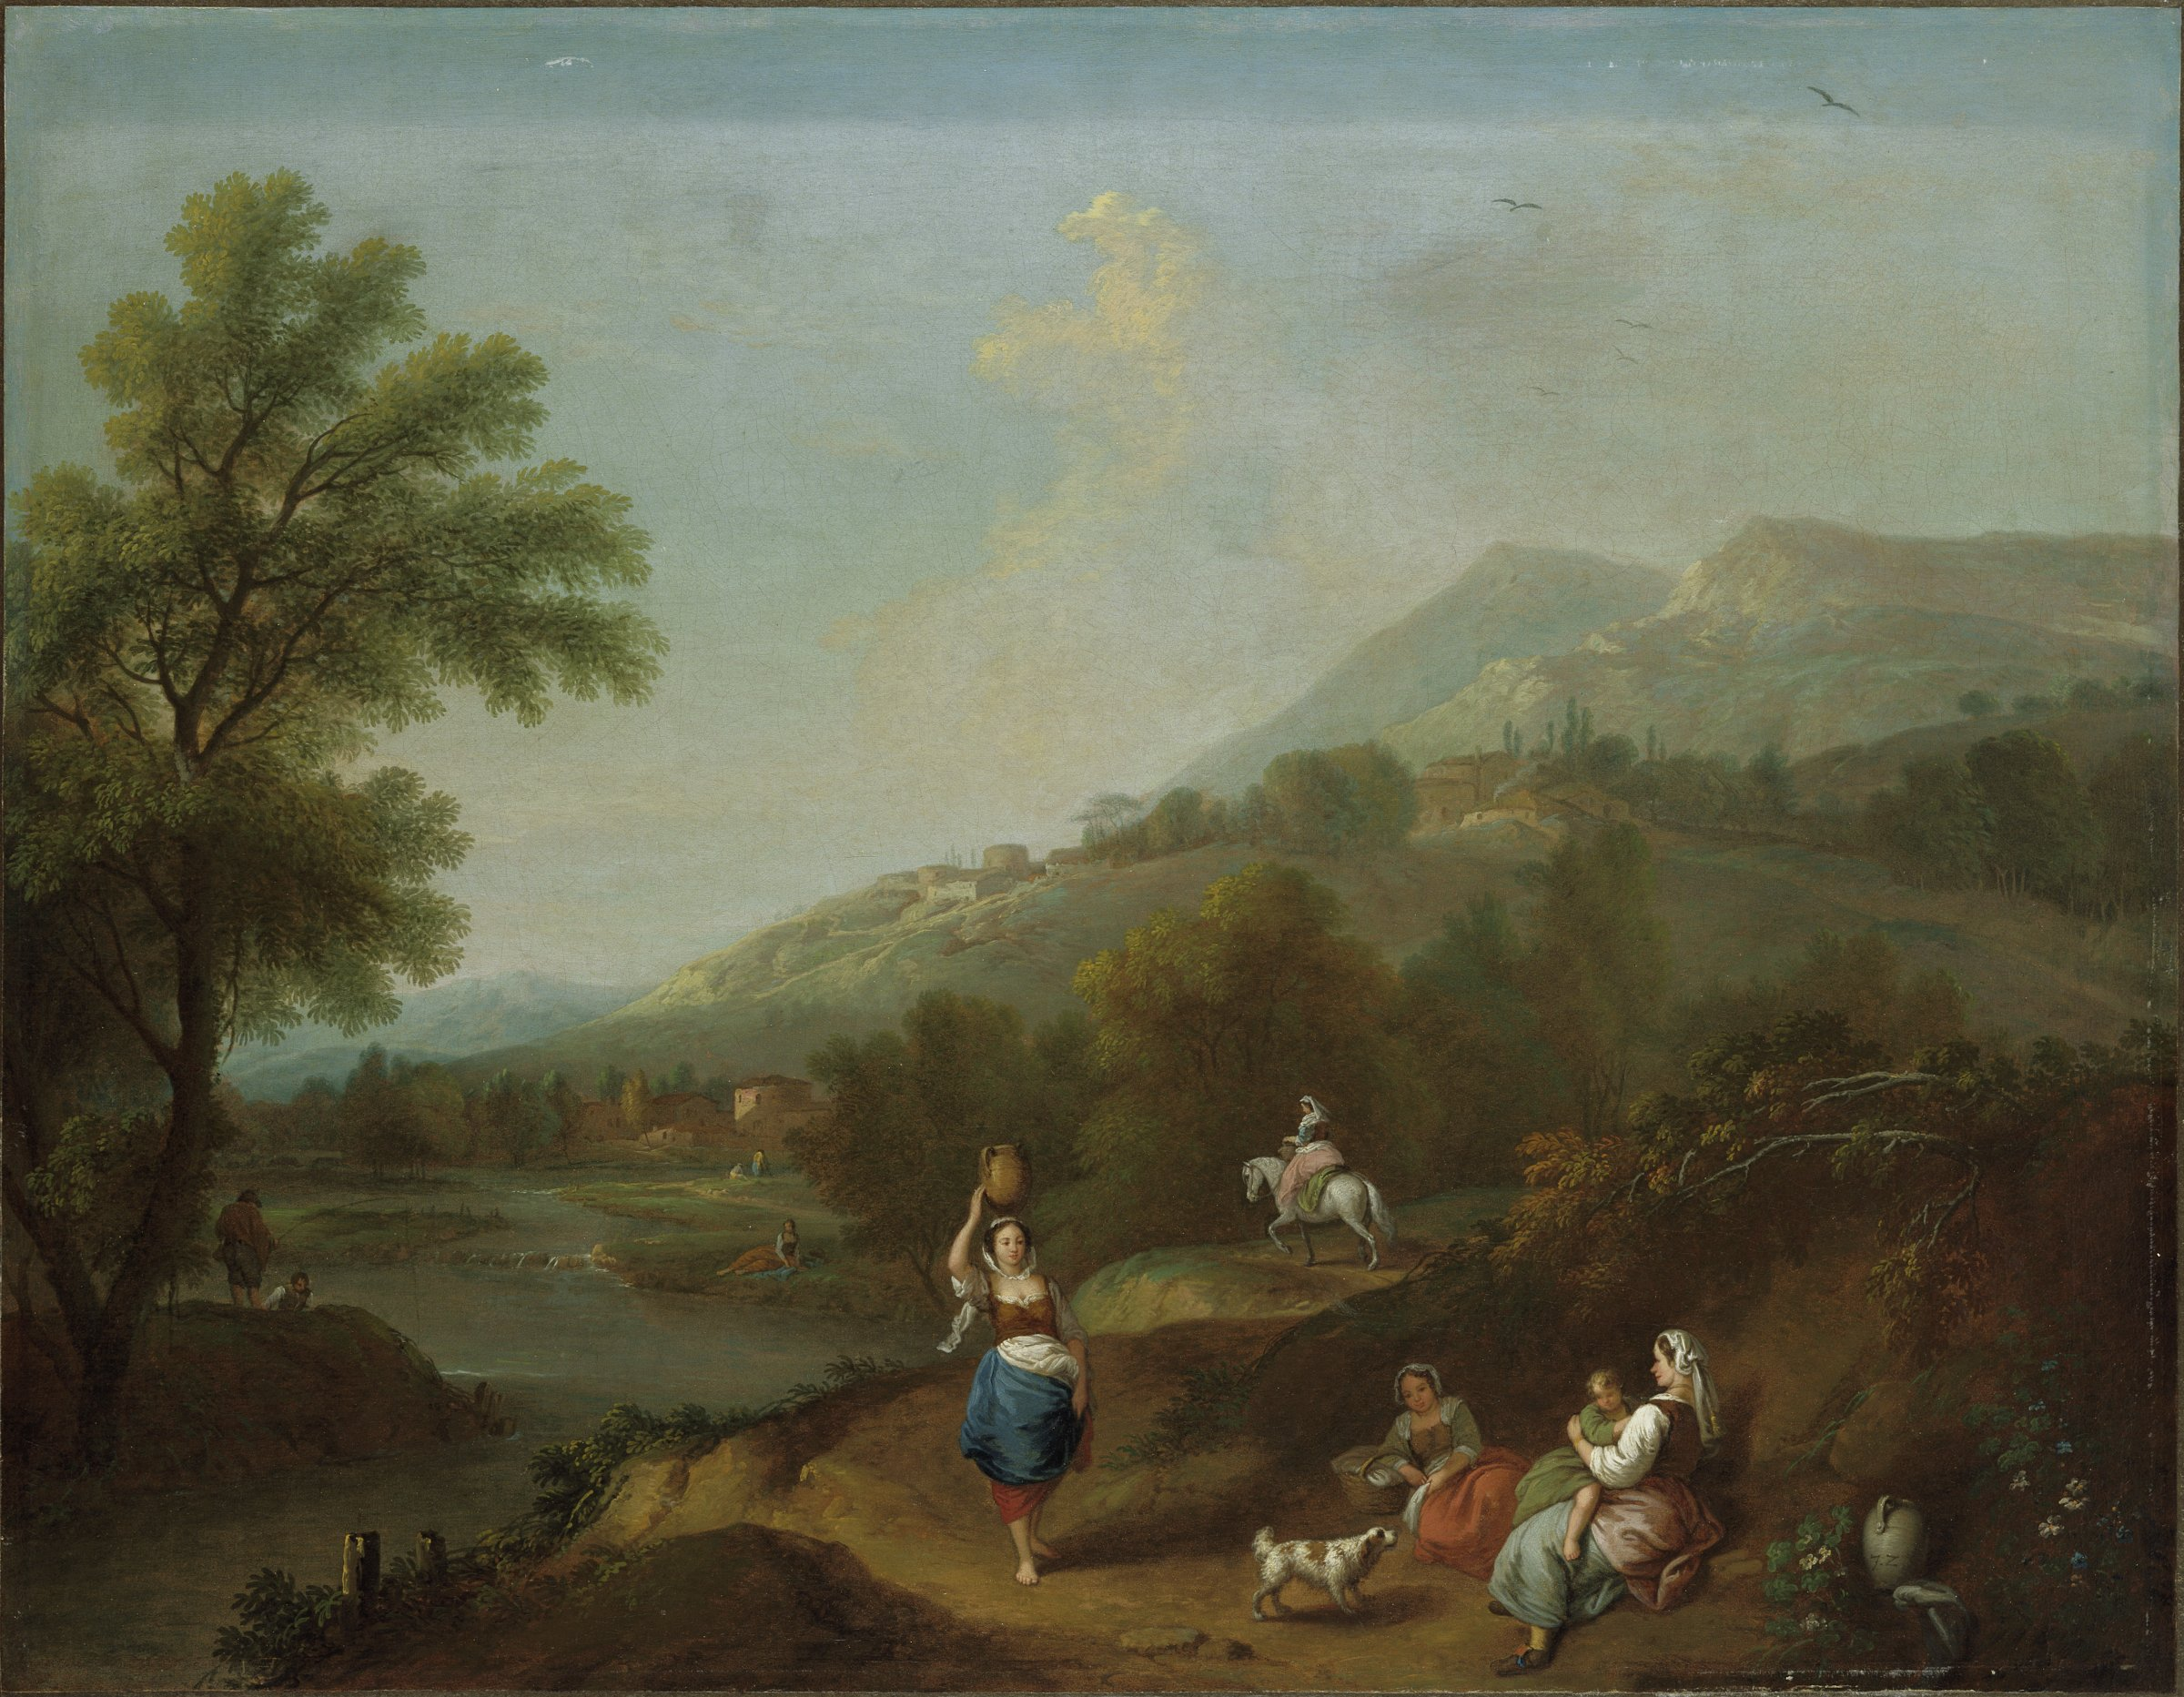 In this landscape, women rest by the side of the road on a hillside beside a river. Others walk and travel by horse. On the hill in the distance are villages with stone buildings.